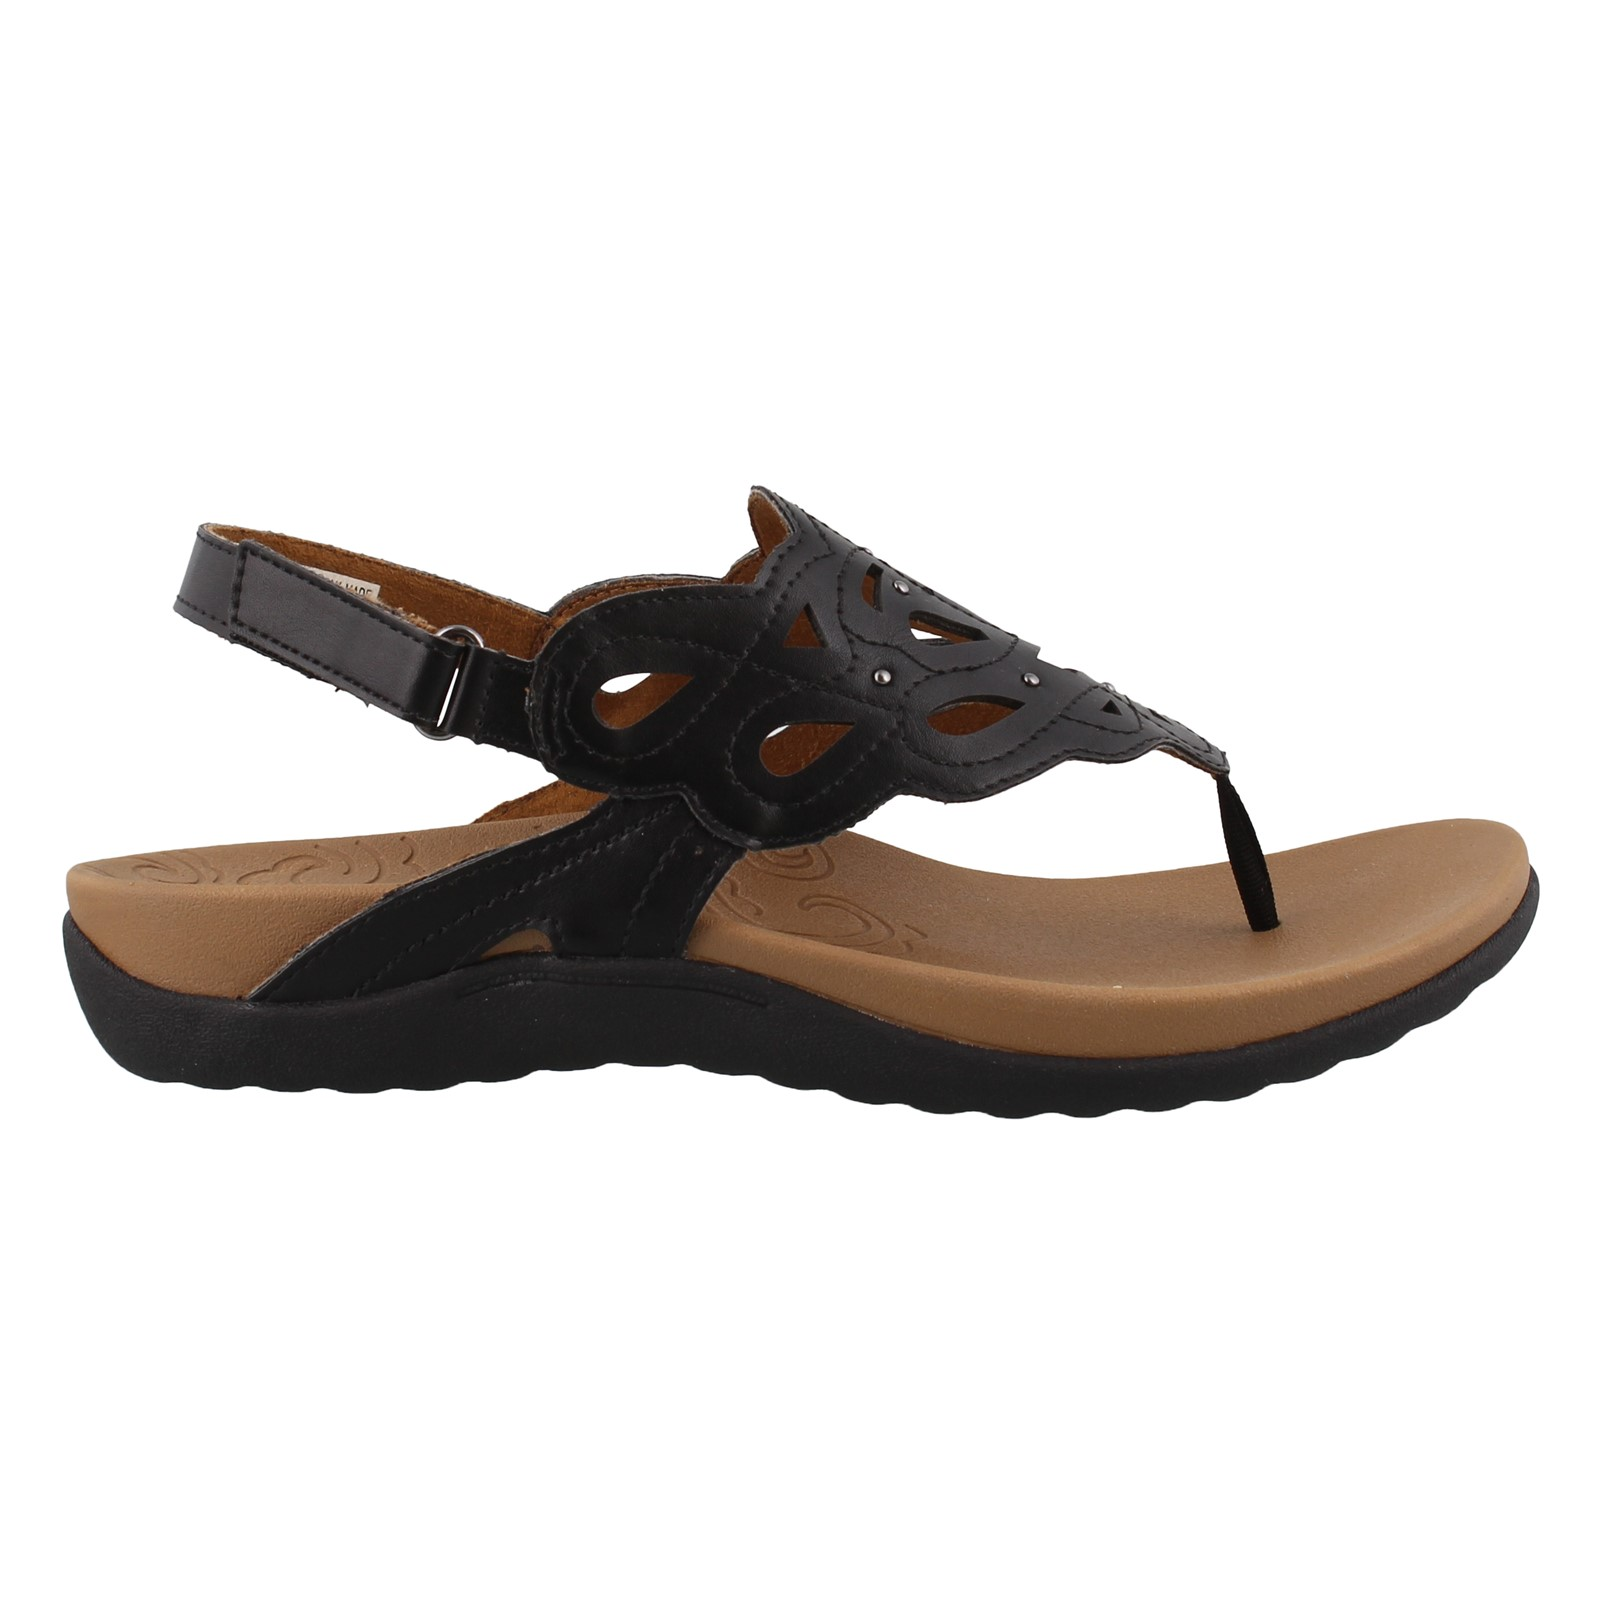 Women's Rockport, Ridge Sling Sandals